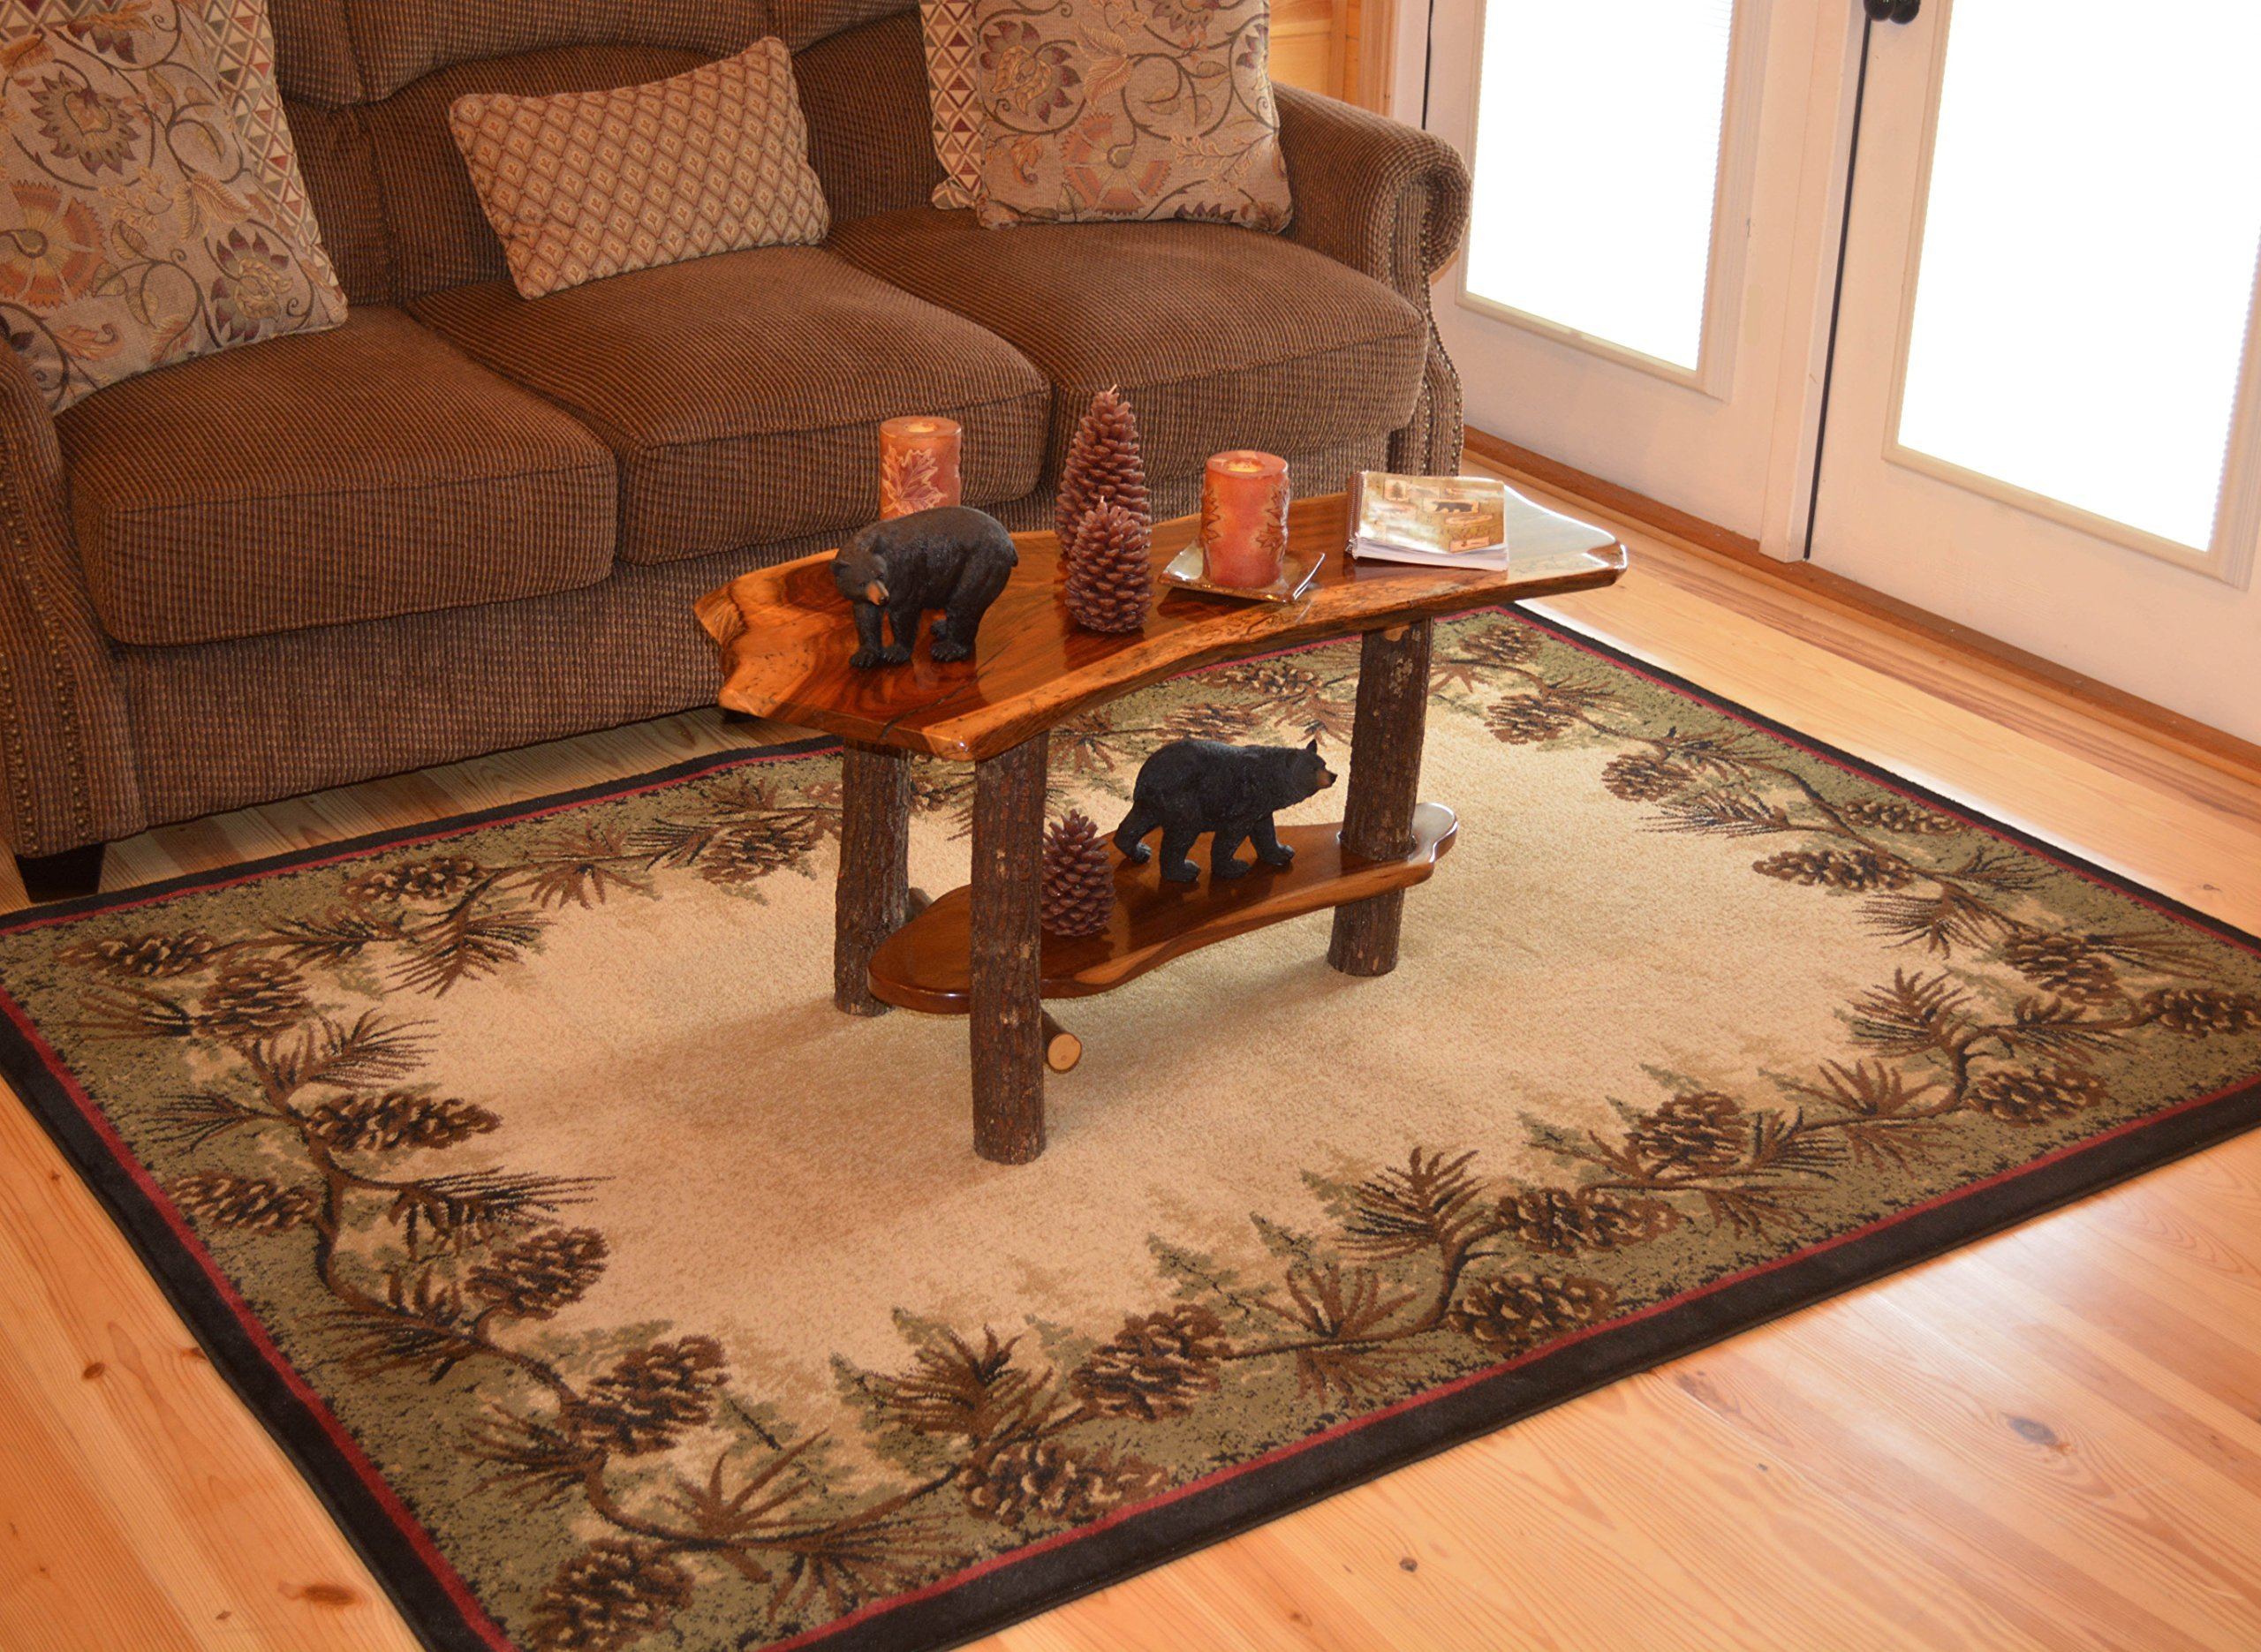 Rustic Pine Cone Border Brown 4x6 Area Rug 3 11x5 3 Home